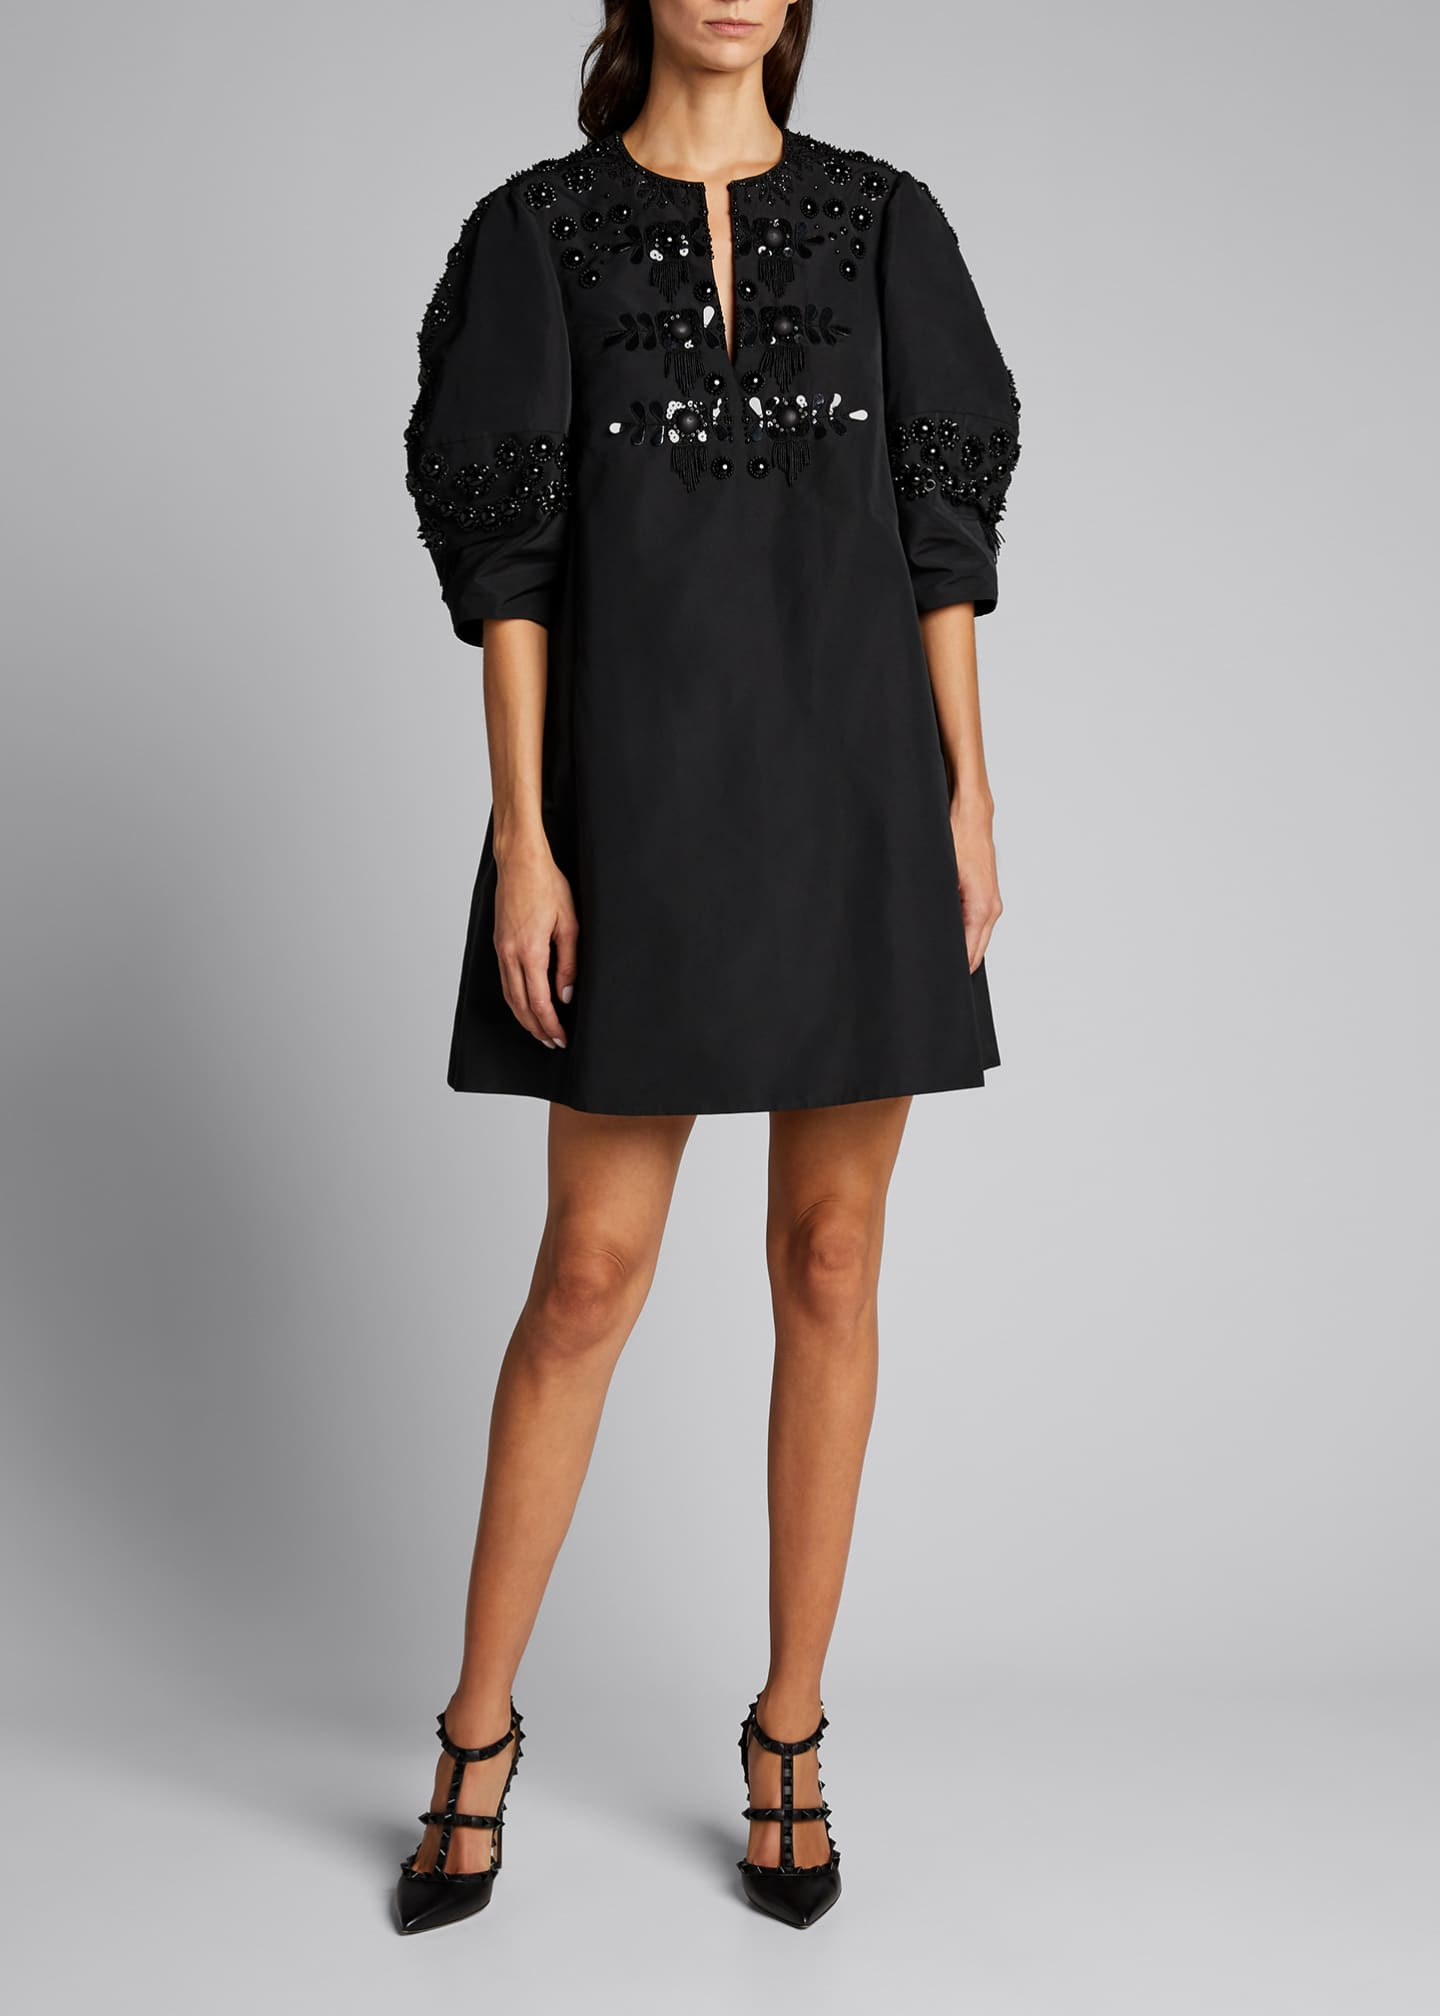 Image 1 of 5: Micro Faille Embellished Puff-Sleeve Dress